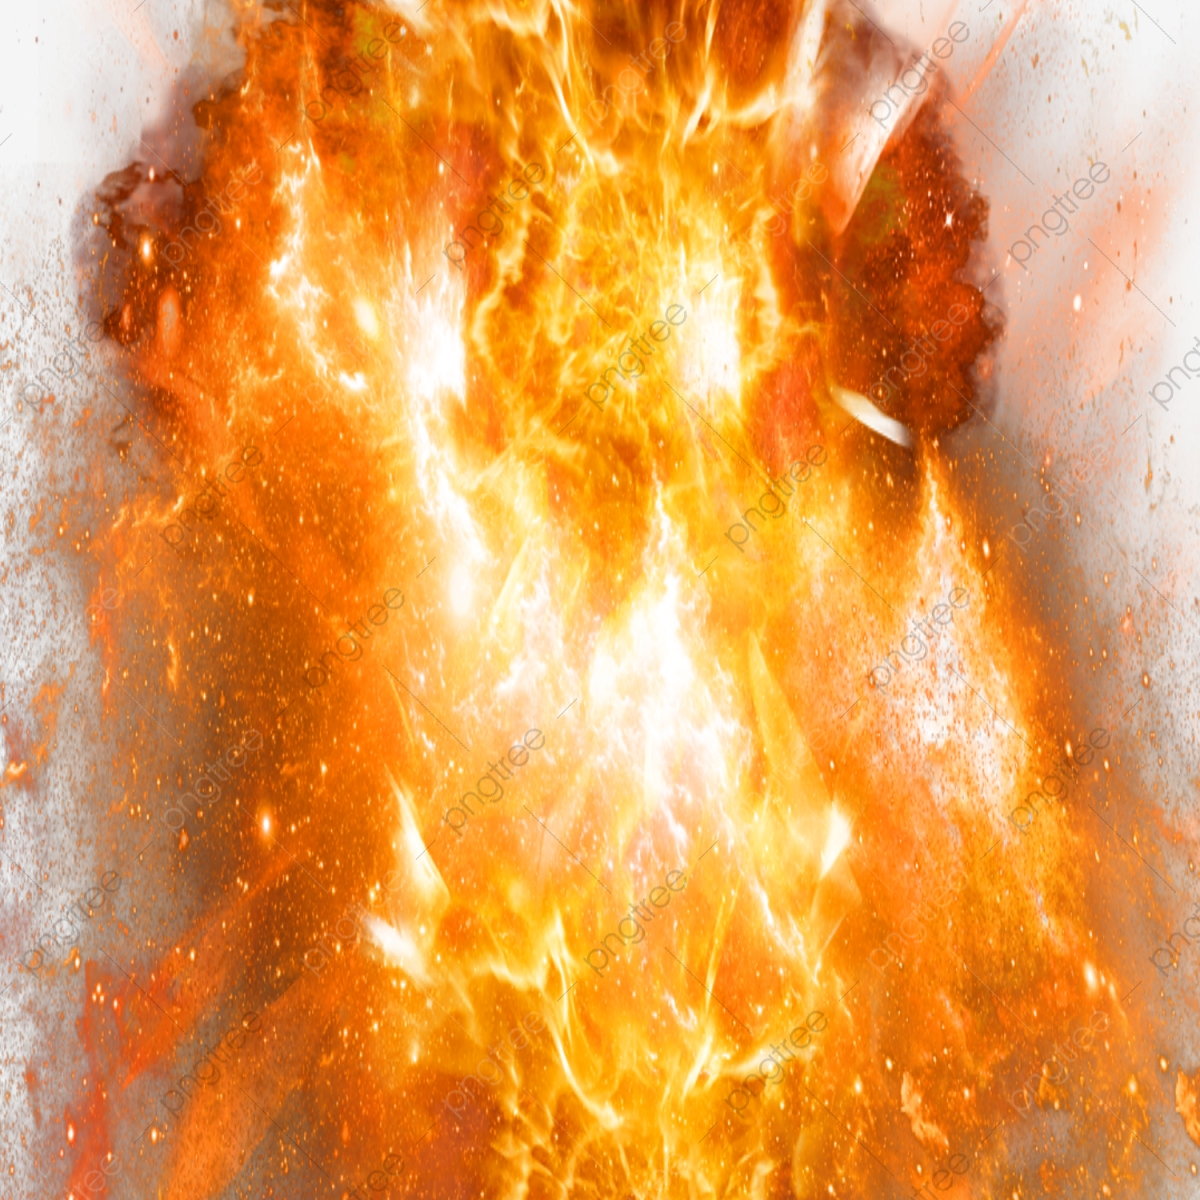 Flames clipart big fire. Flame png transparent background